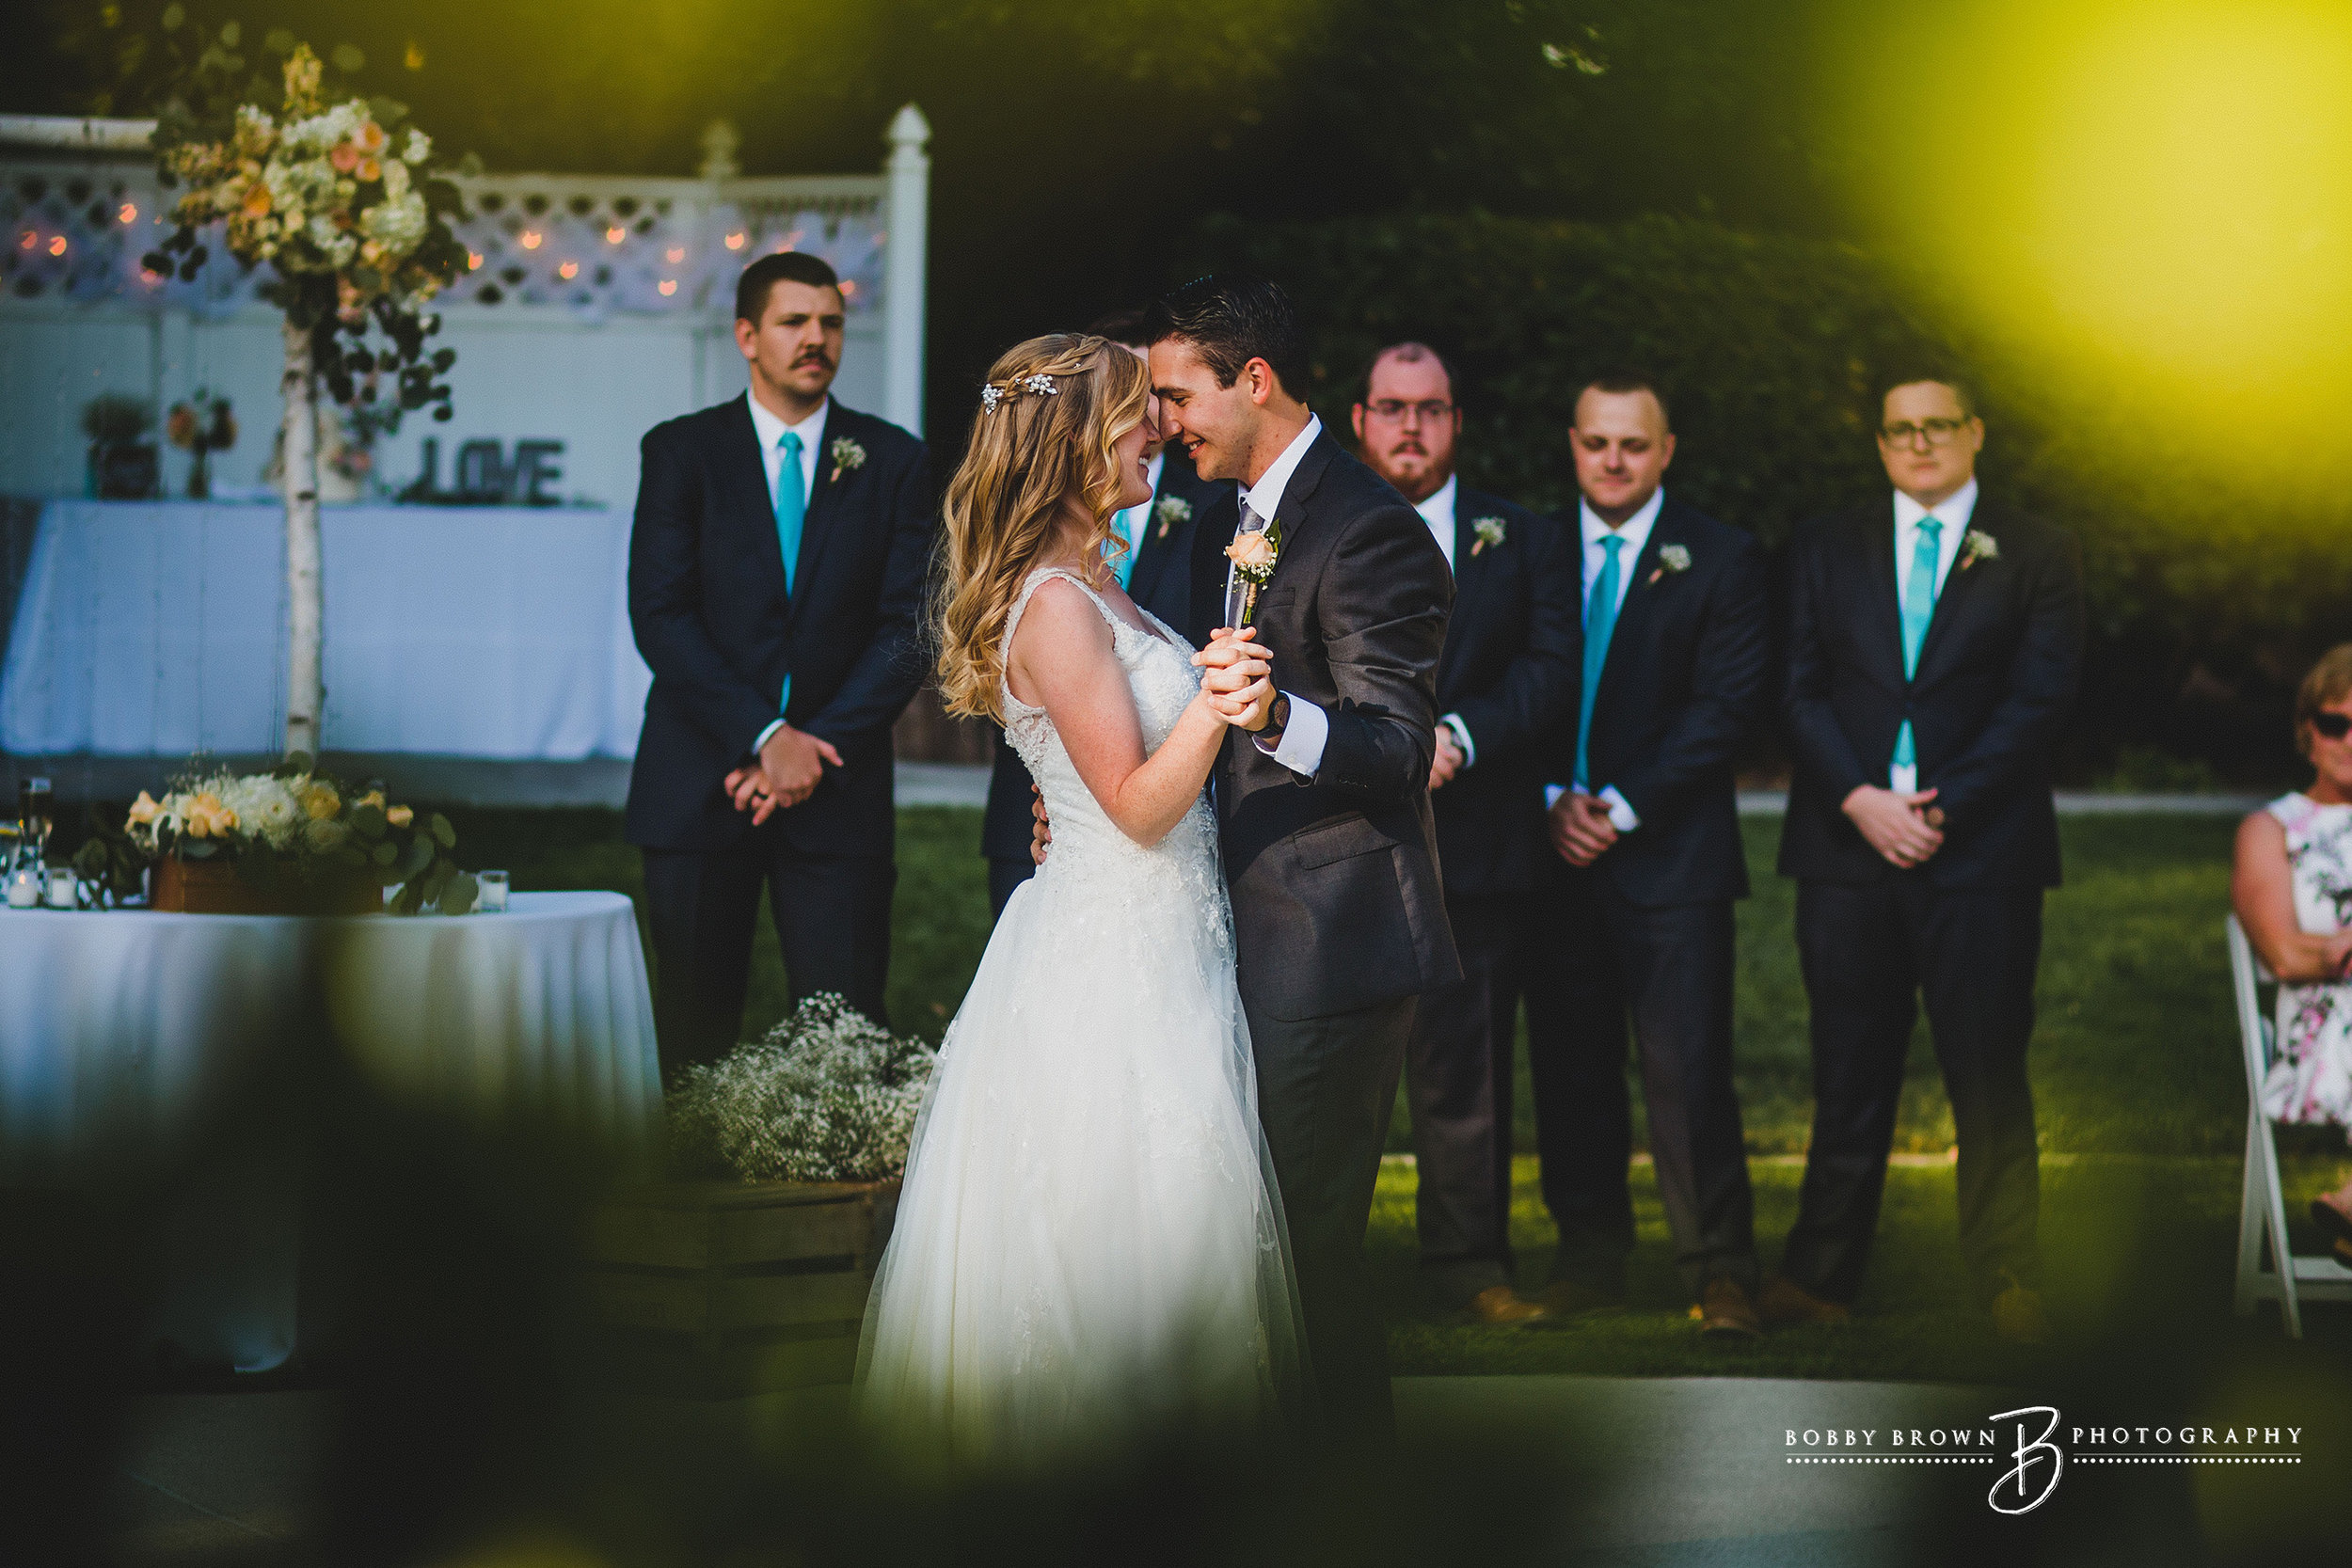 hugginswedding-746.jpg